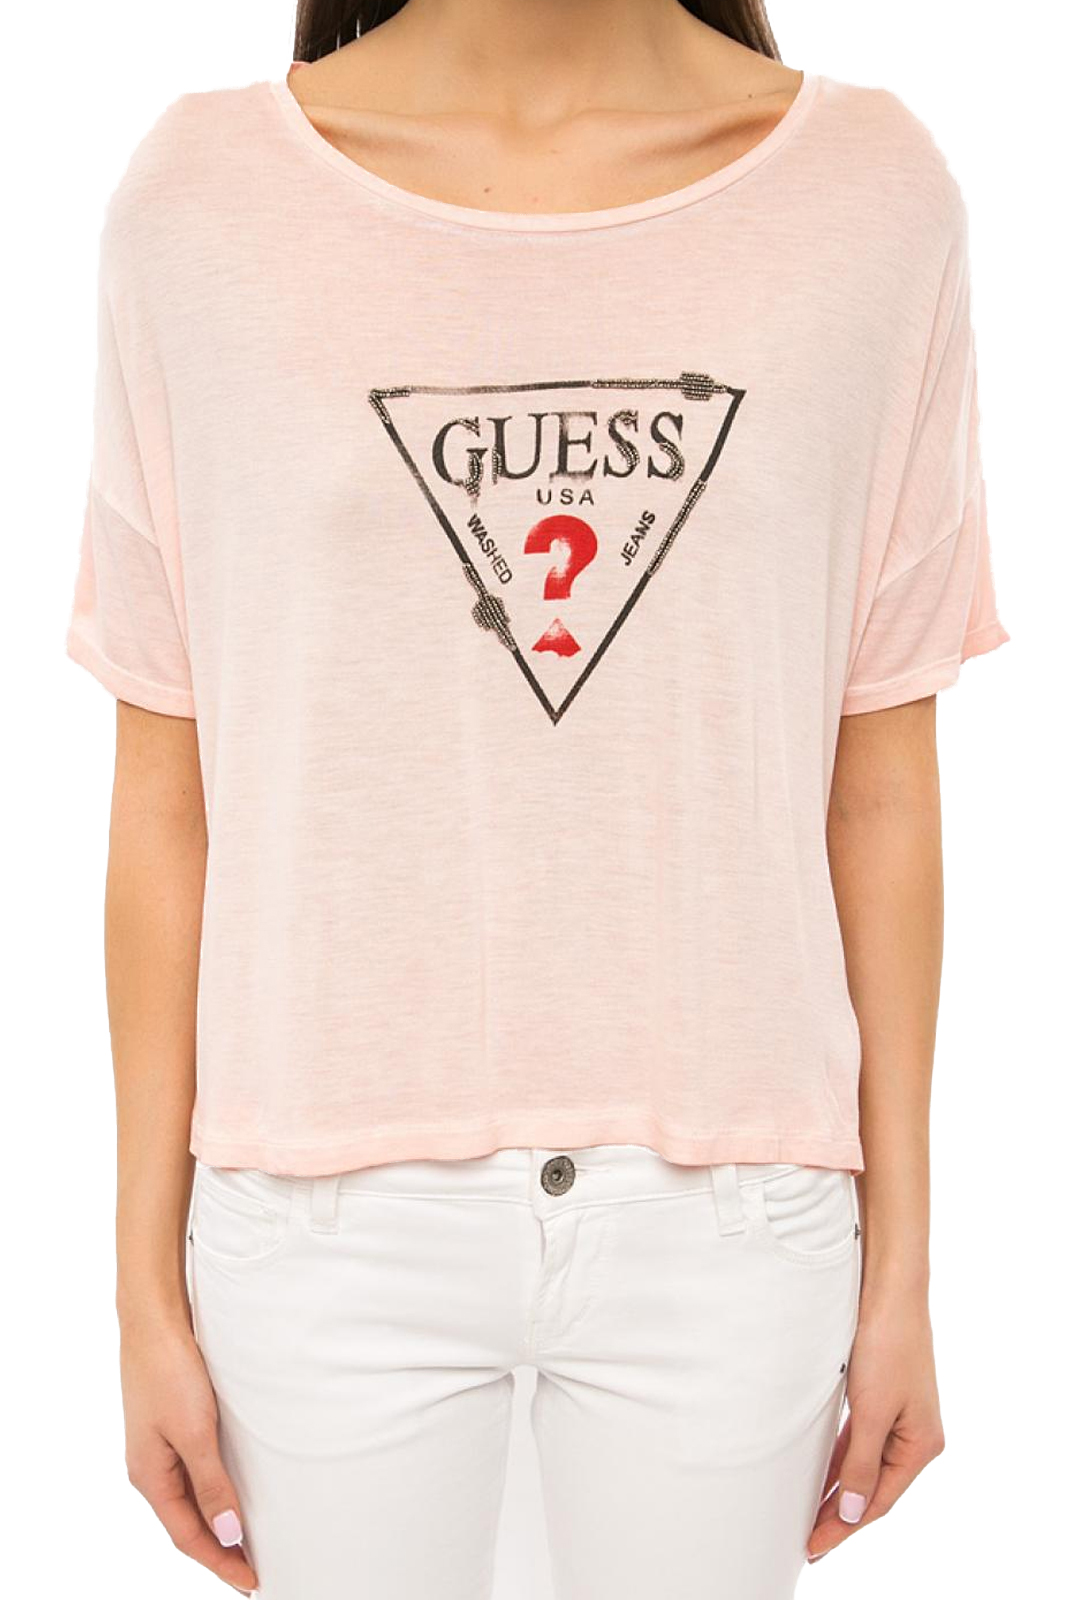 Tee shirt  Guess jeans W72I56 K4OM0 FT48